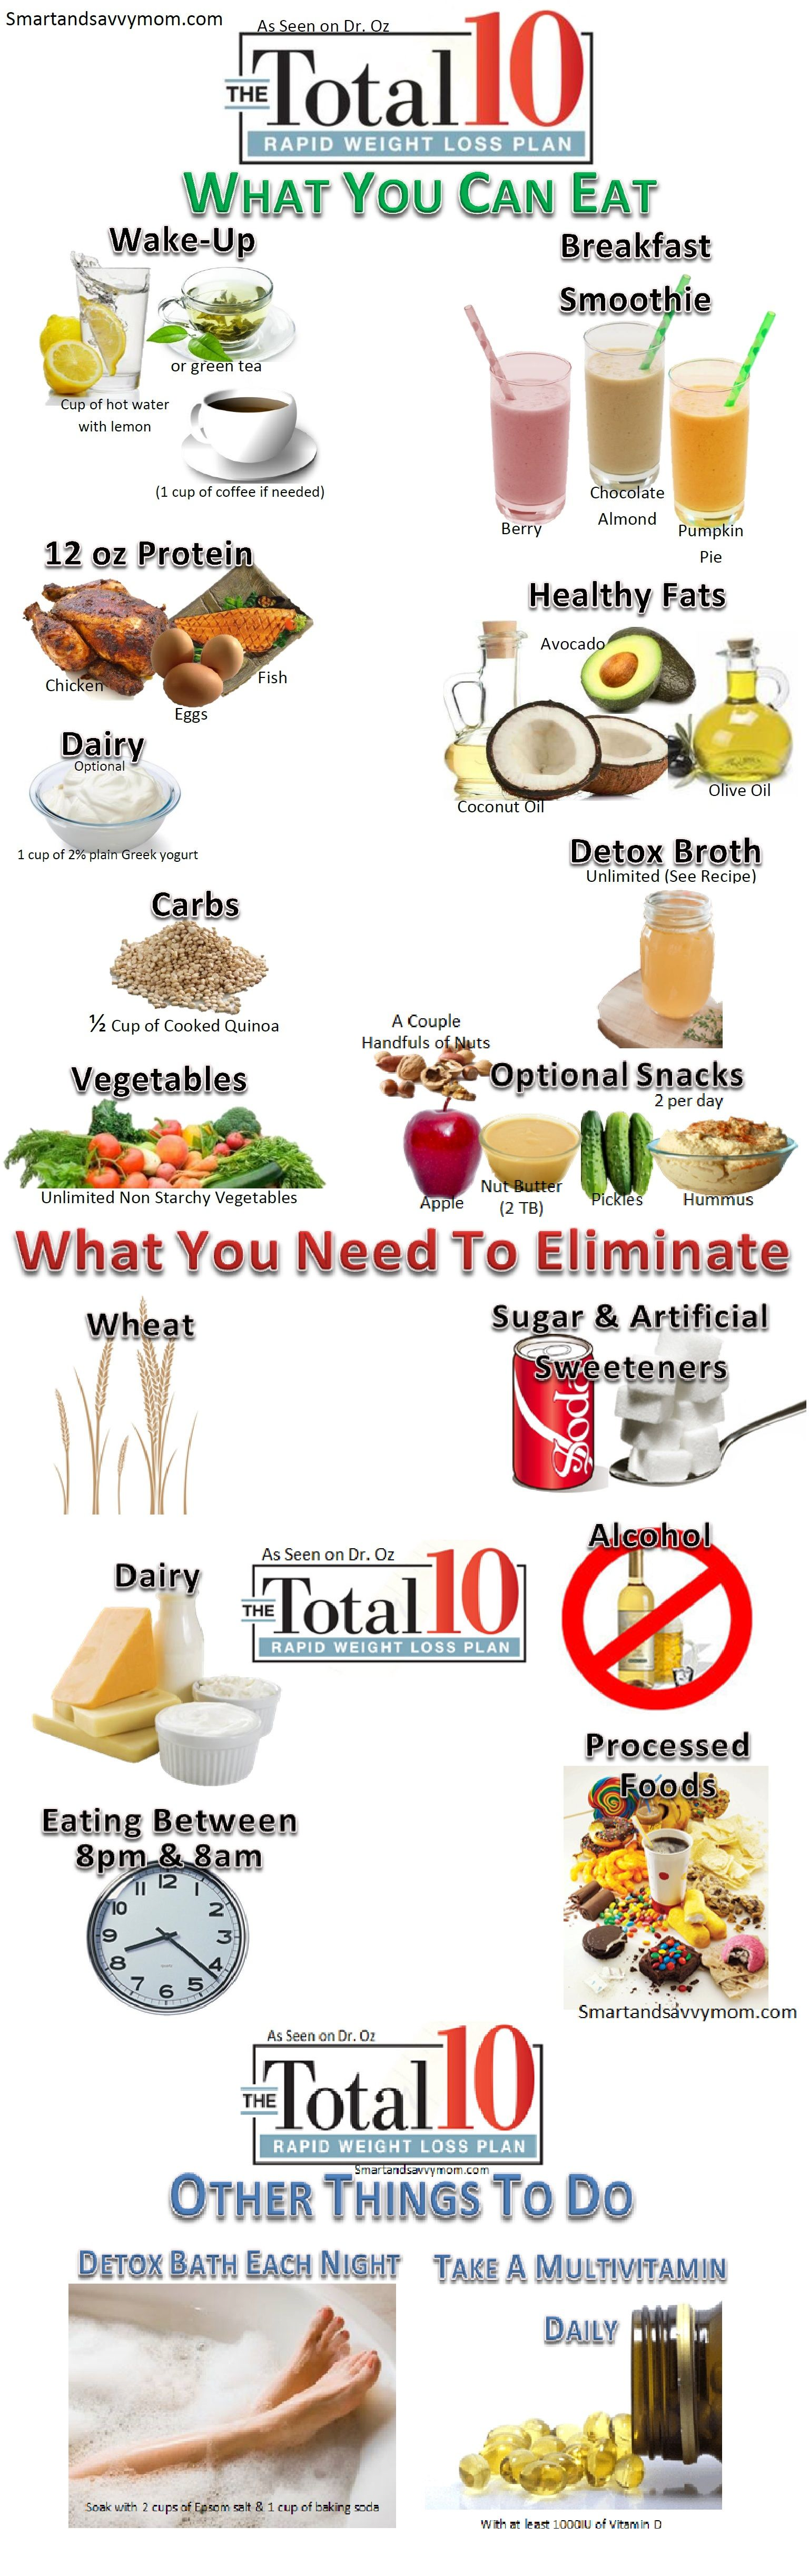 Dr oz total 10 rapid weight loss plan going to try this starting the heart of the matter is that there are deliberate painless and effective methods learn the best effective weight loss food plan nvjuhfo Gallery